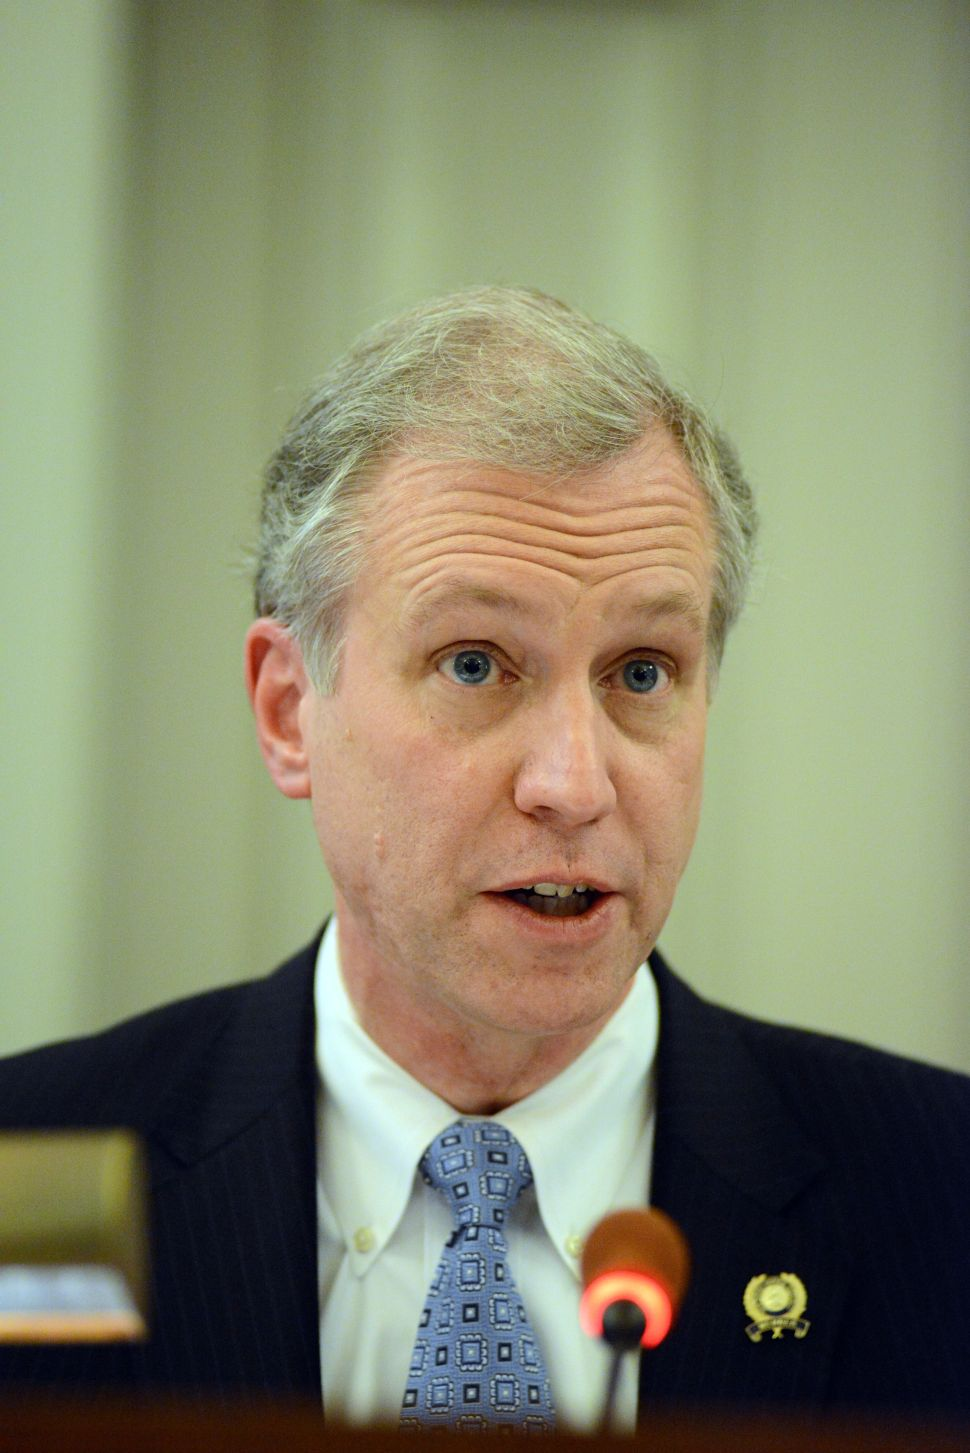 Monmouth County Democratic Chairs Criticize Wisniewski for 'Attack on Party'